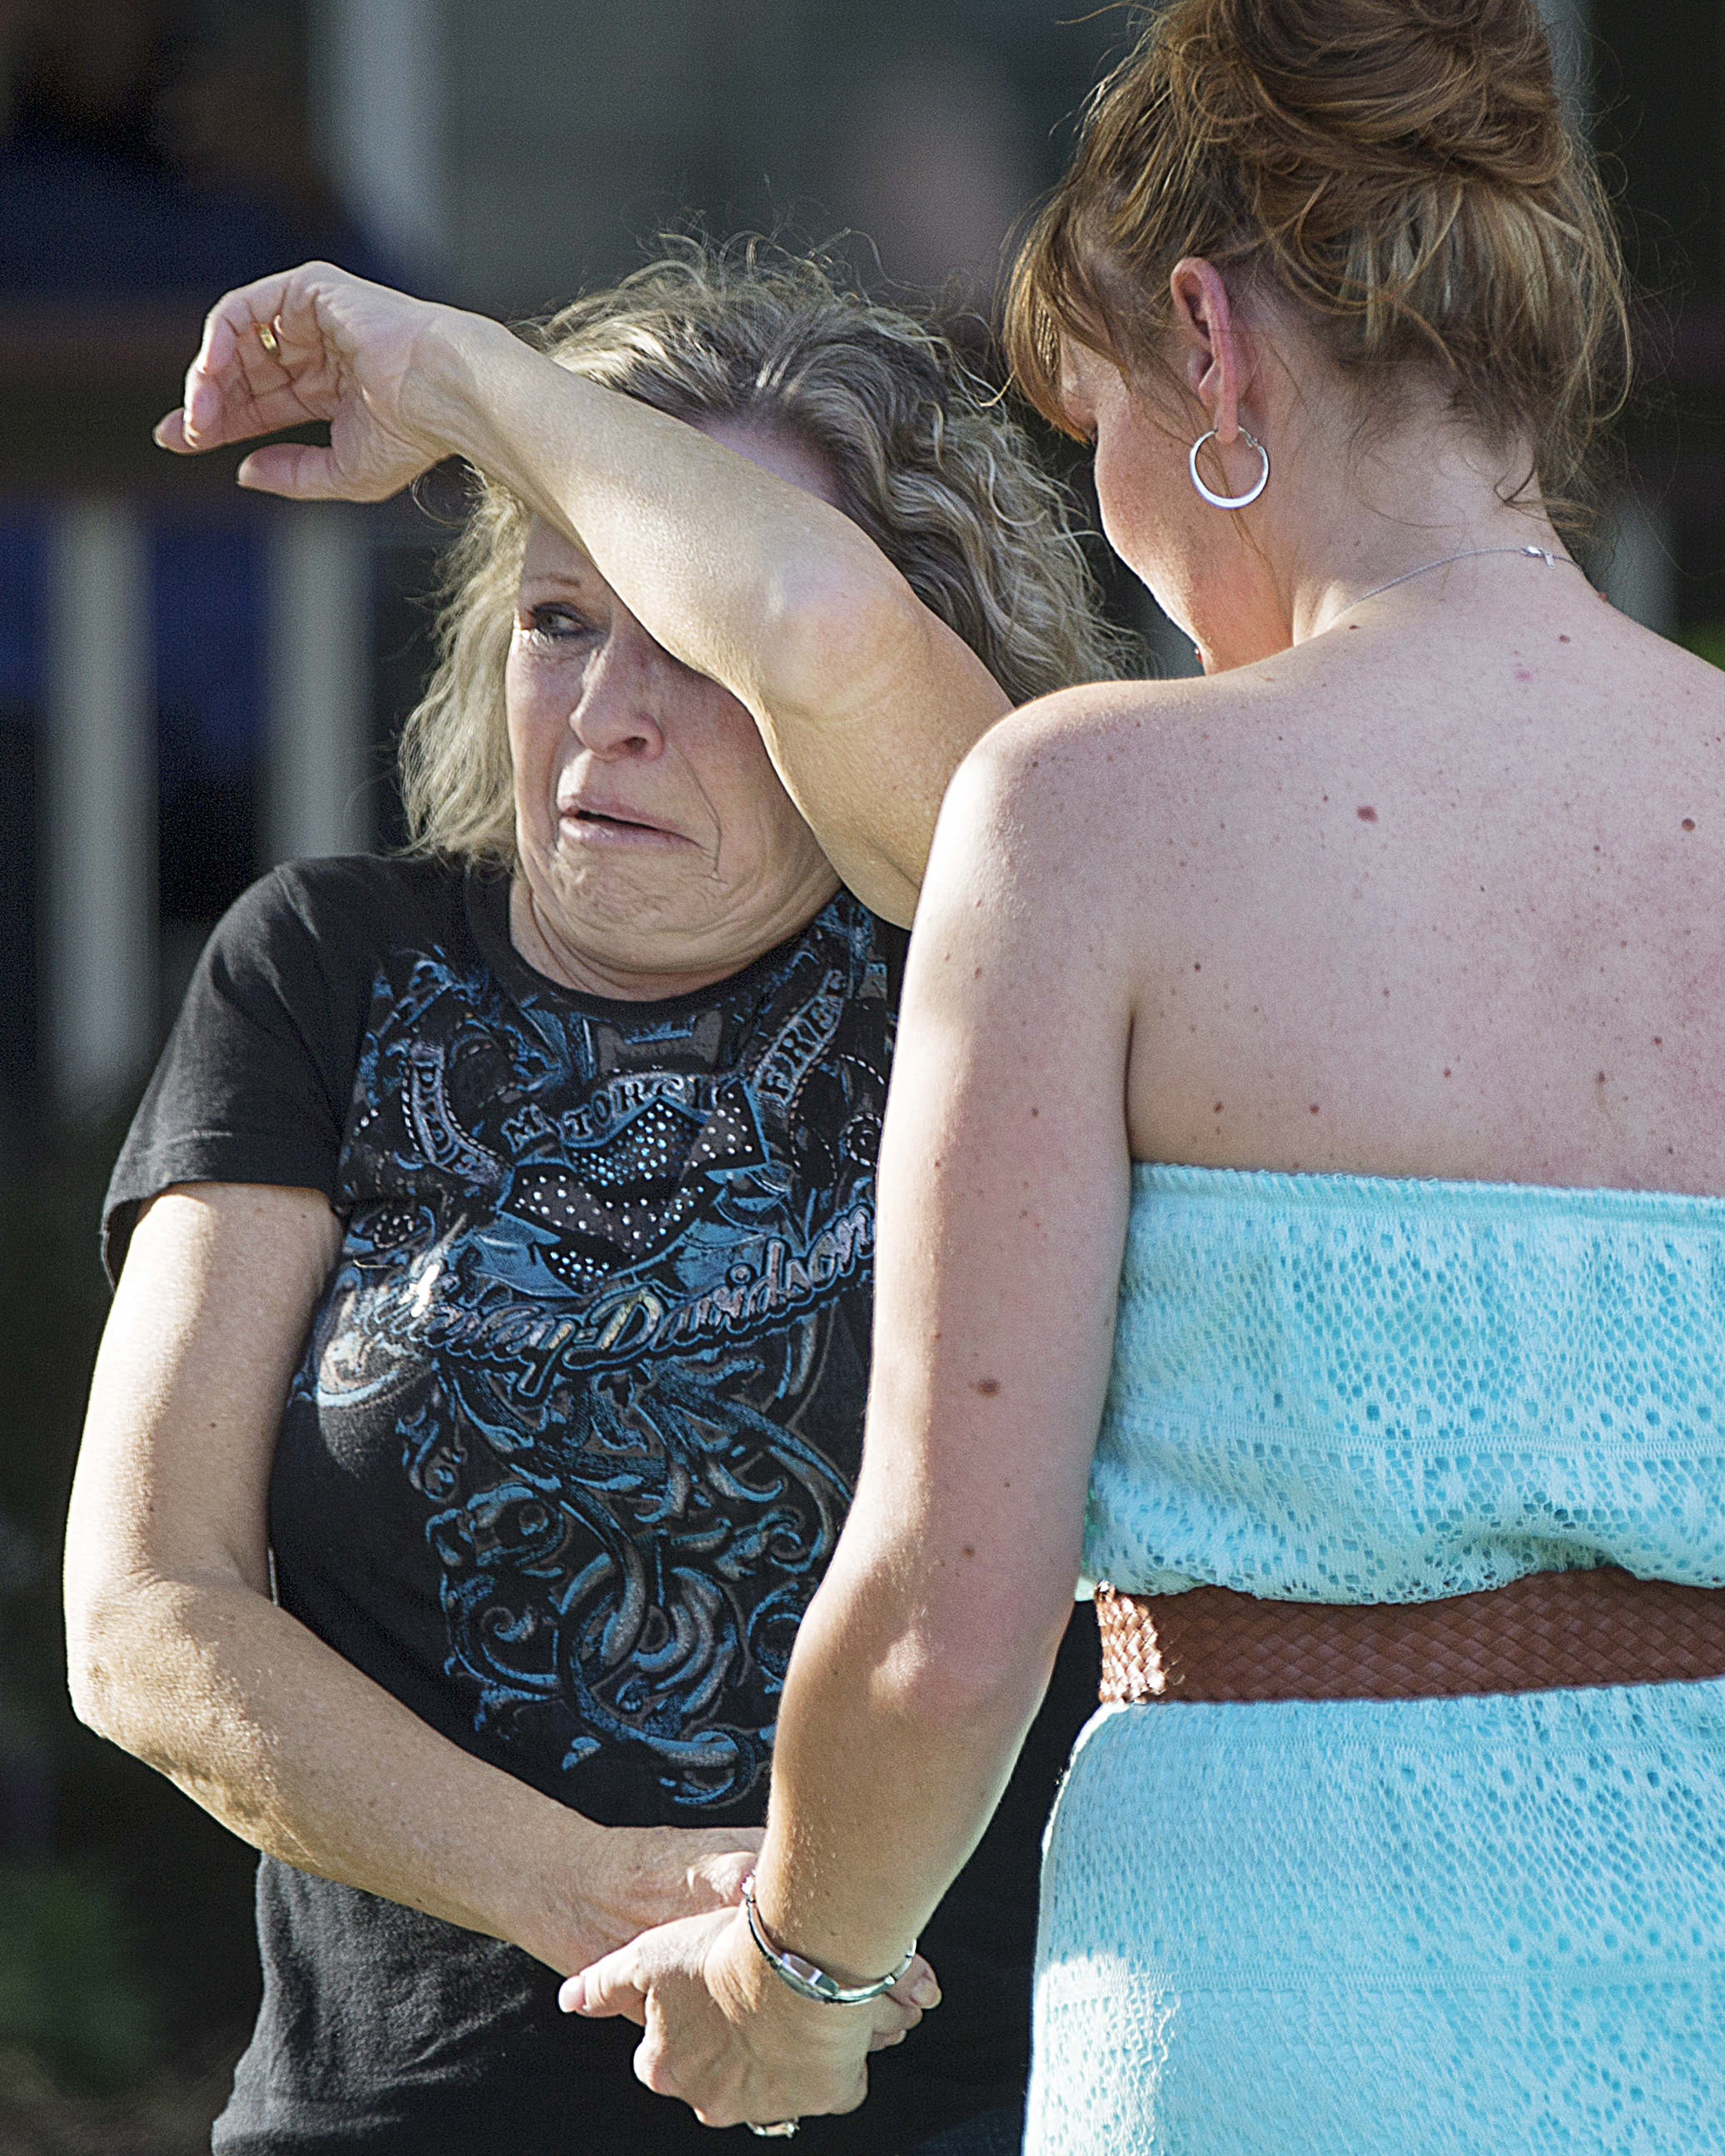 A mother reacts to her daughter's death at the scene of a double homicide at a residence on Soaring Eagle Court, west side of Indianapolis, Thursday, September 22, 2016.